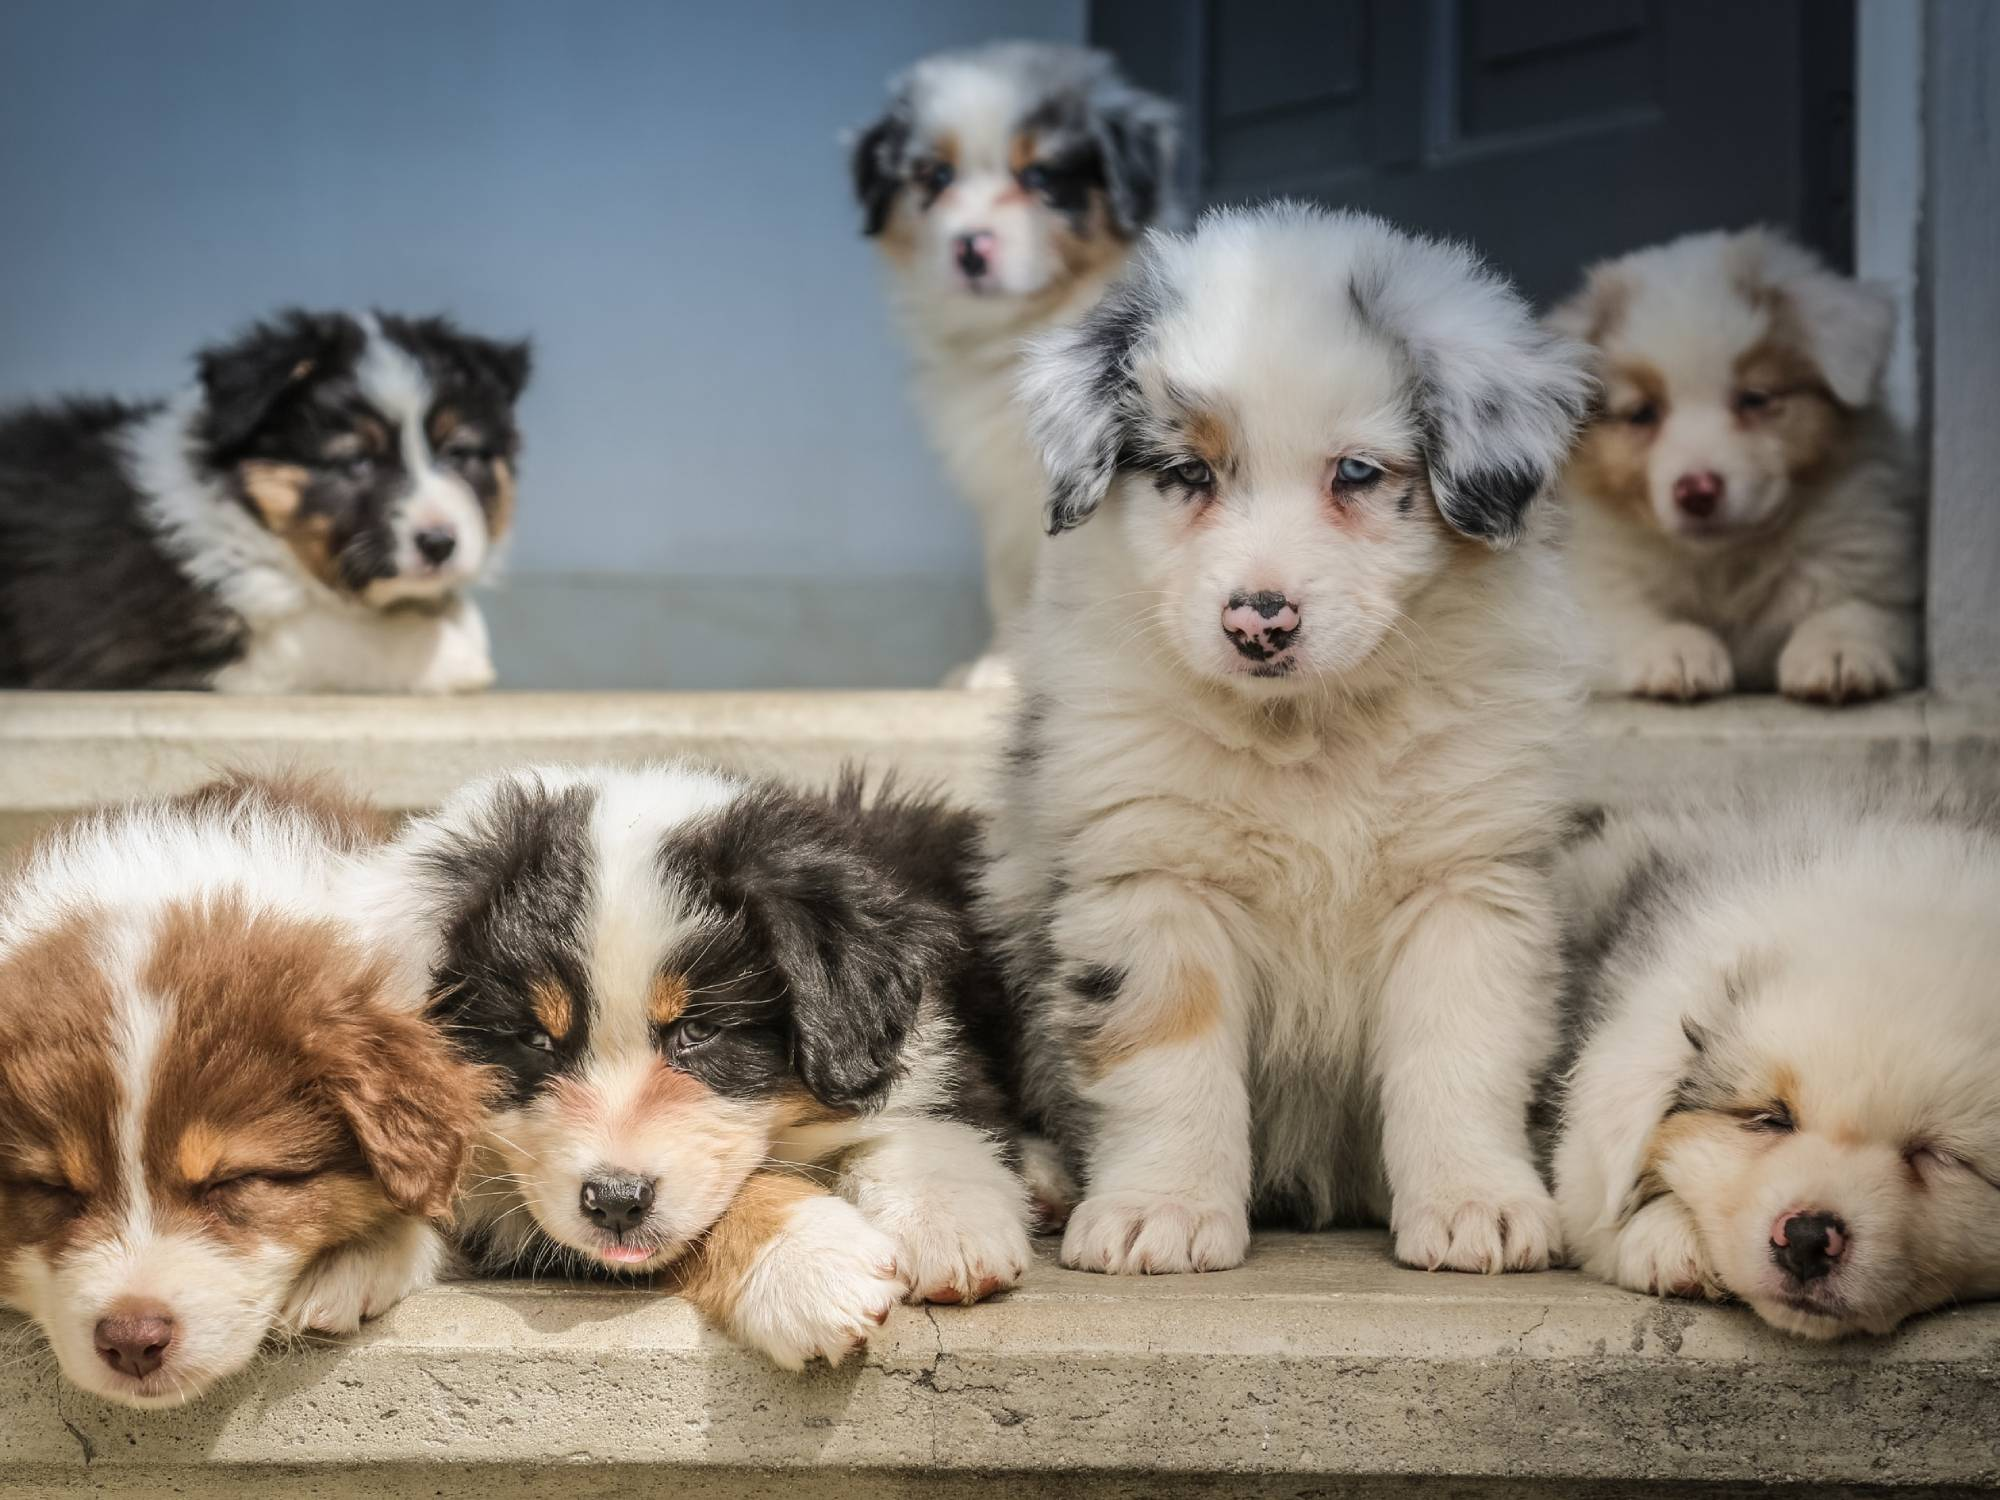 Seven Australian Shepherd puppies on some concrete stairs.